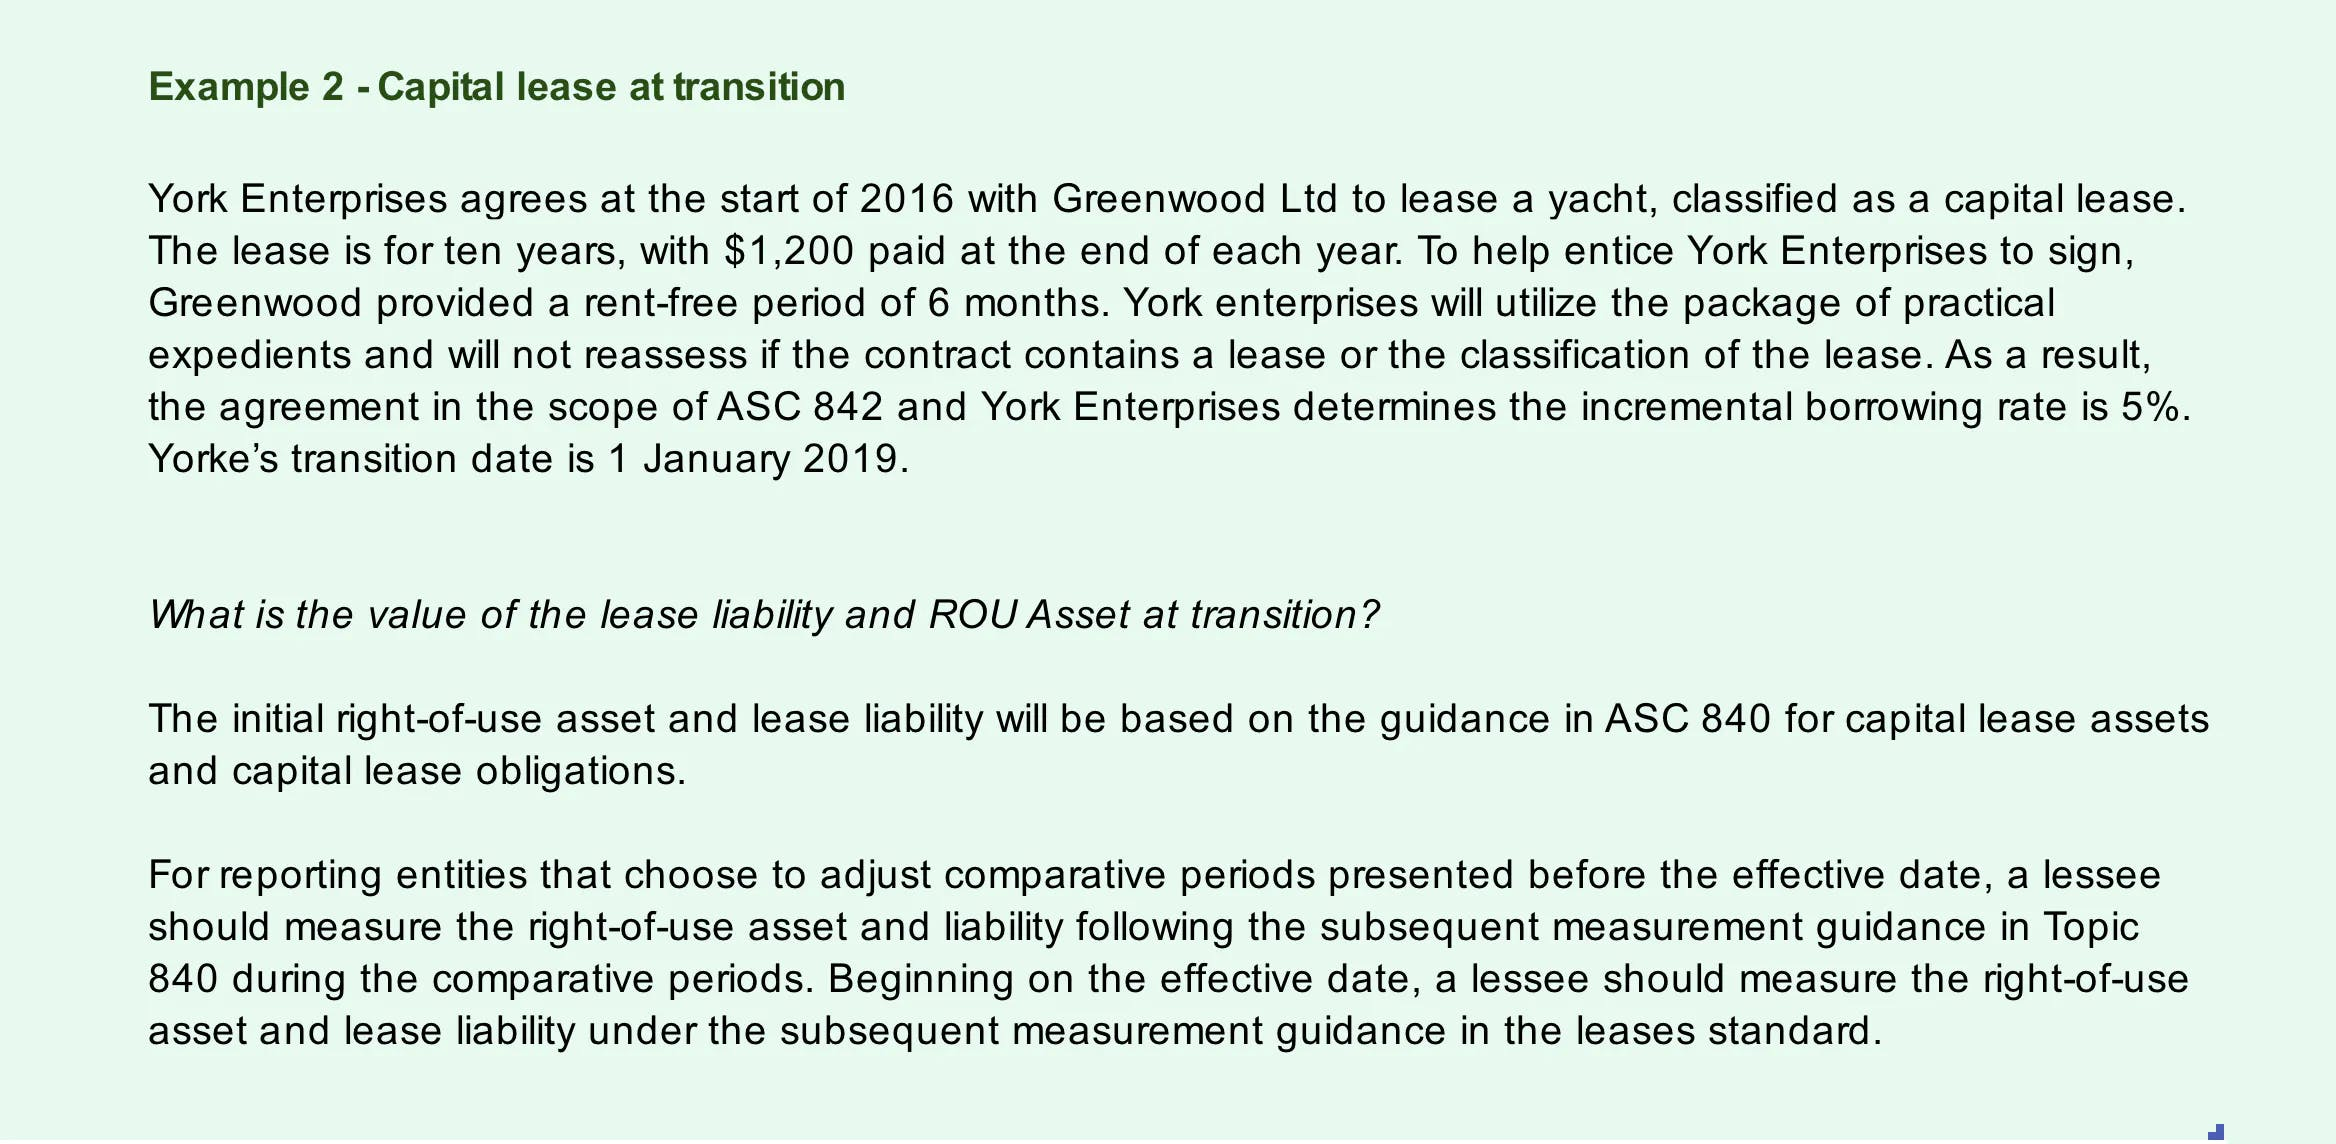 Example of how to transition from a capital lease under ASC 840 to a finance lease under ASC 842